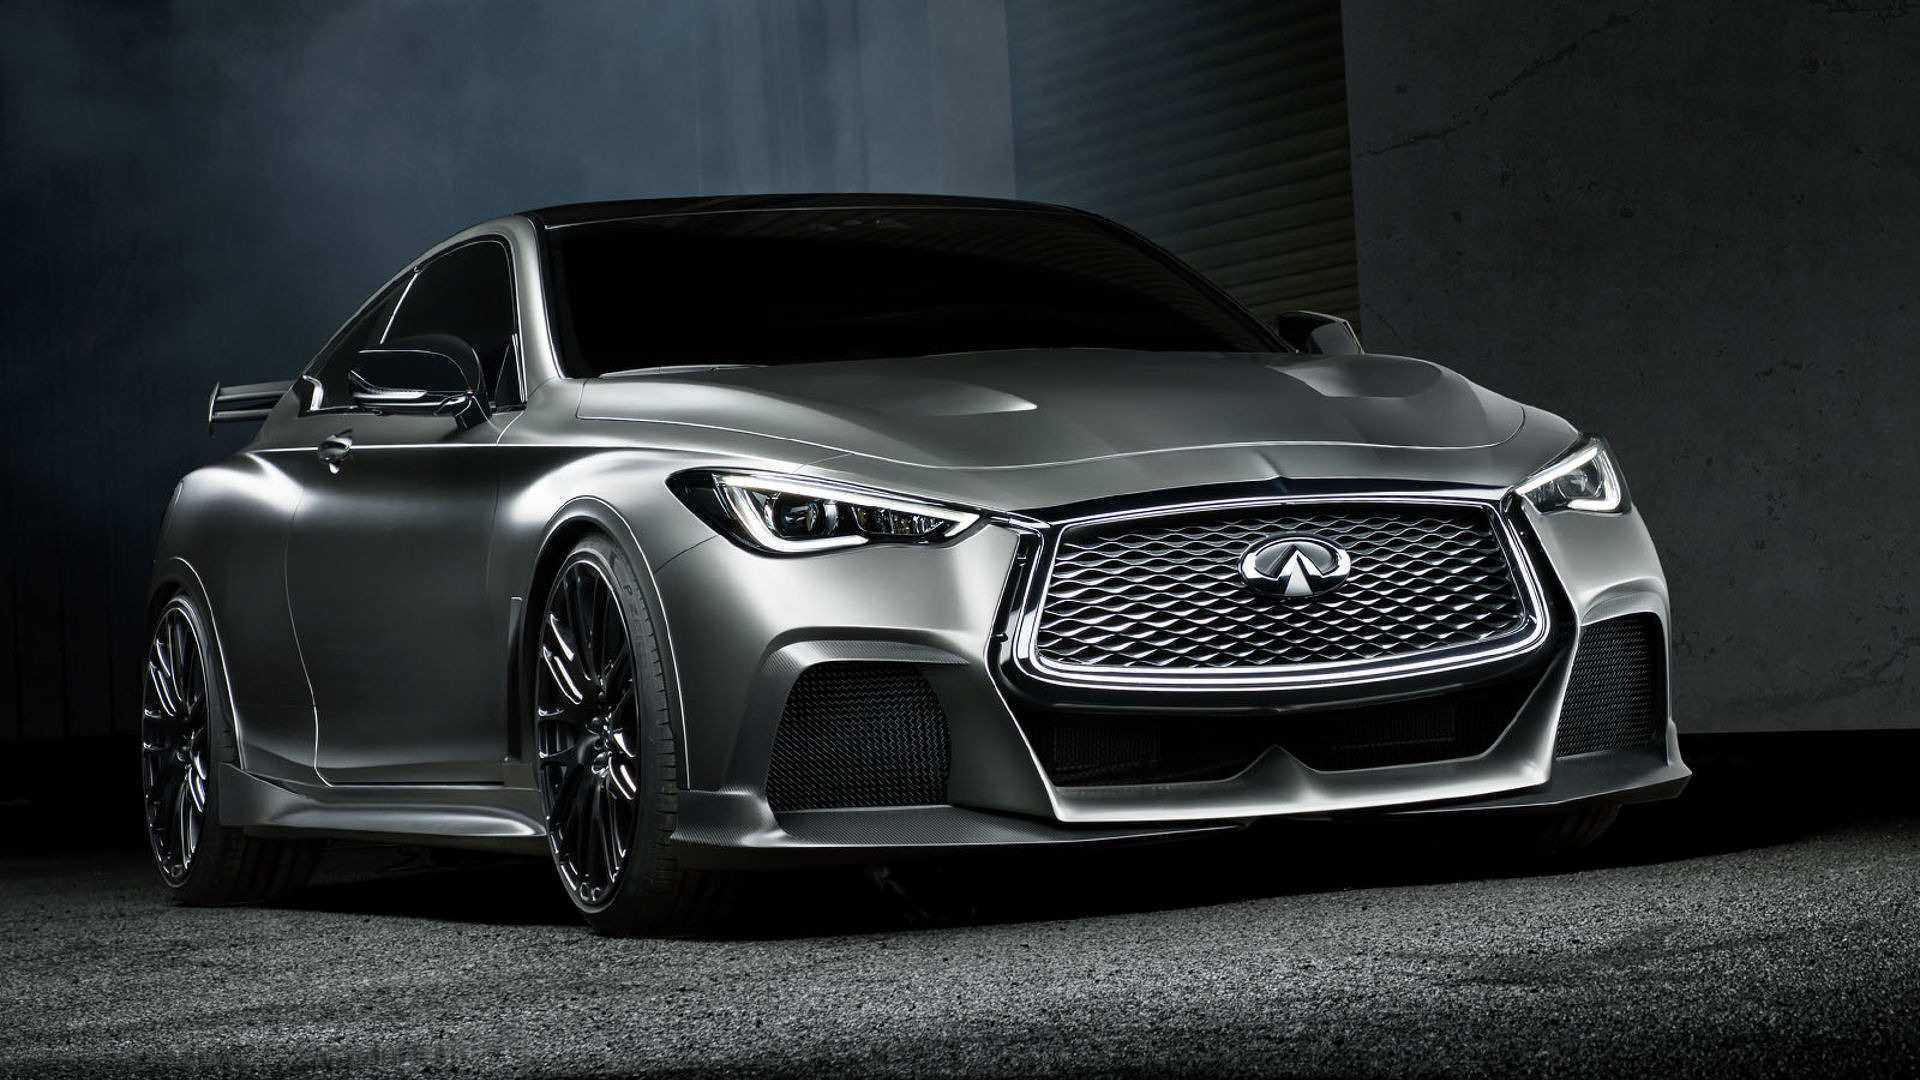 54 The Best Infiniti Q60 2020 Ratings